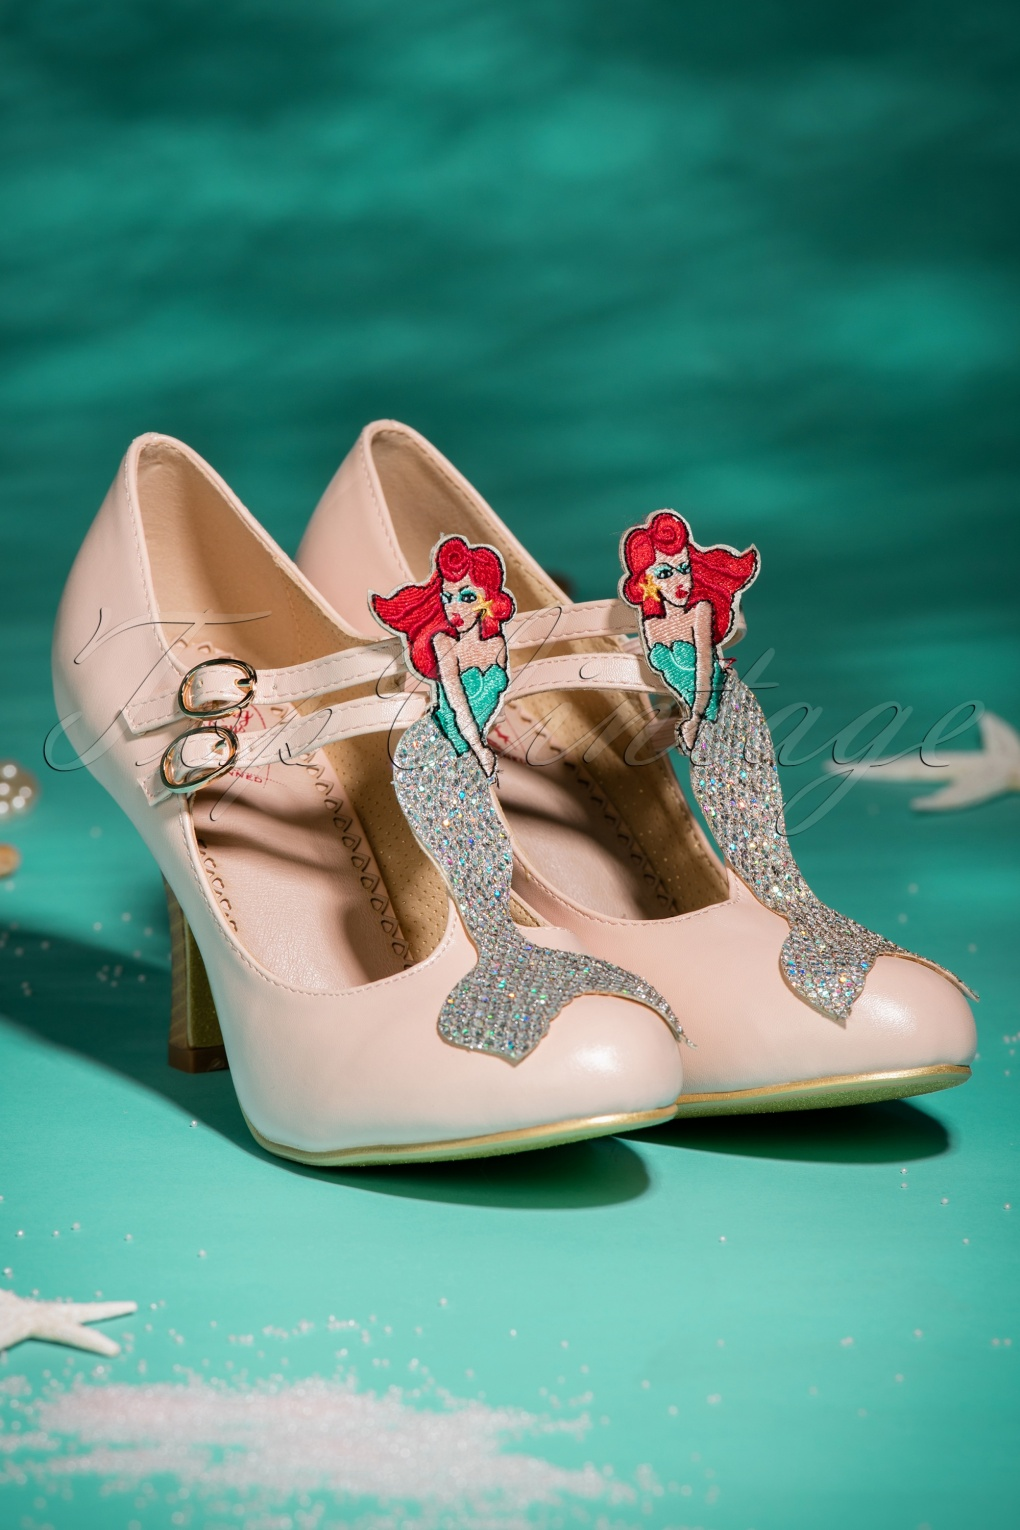 Vintage Style Wedding Shoes, Boots, Flats, Heels 50s Stella By Starlight Pumps in Pink £74.72 AT vintagedancer.com